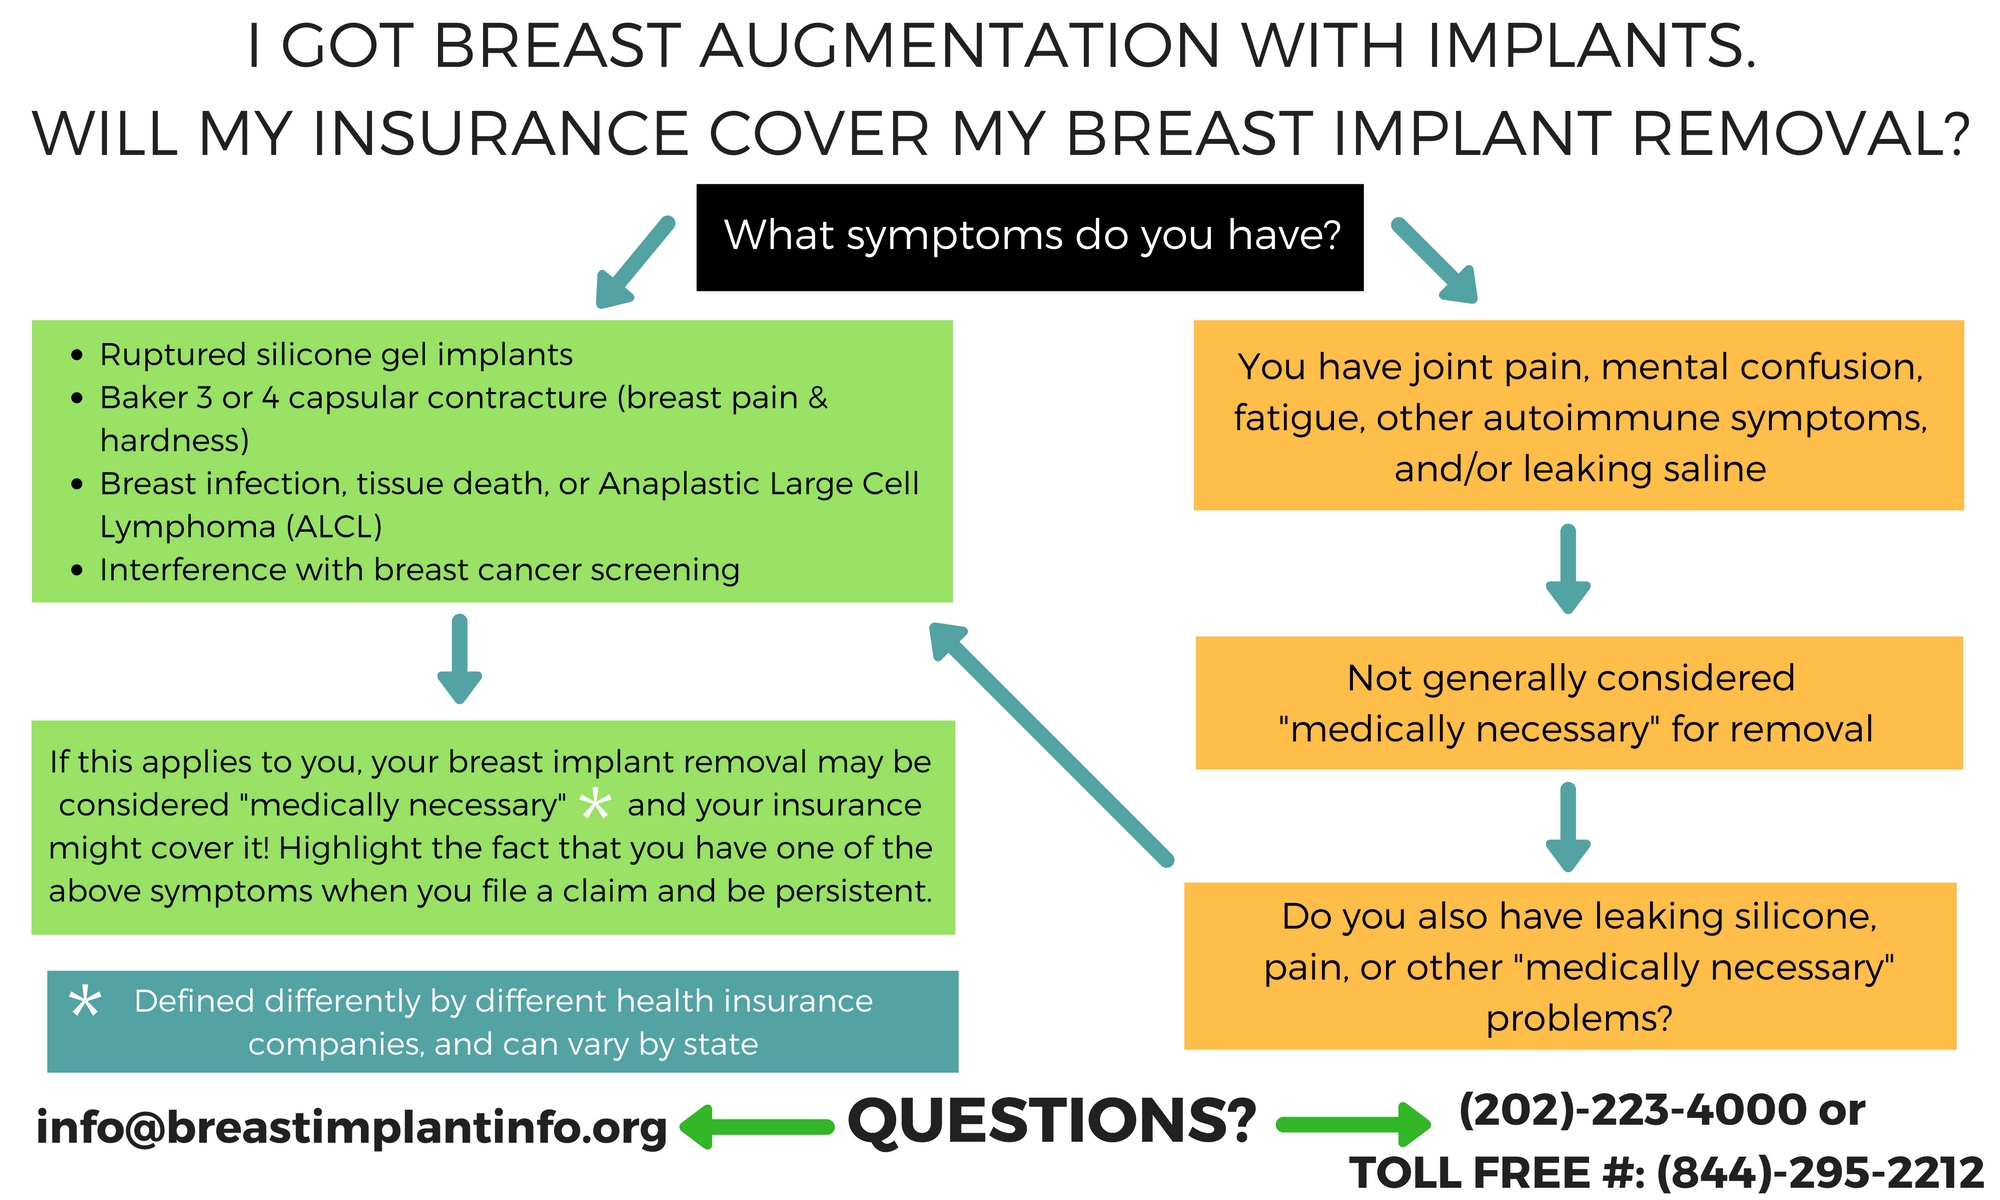 Breast implants information